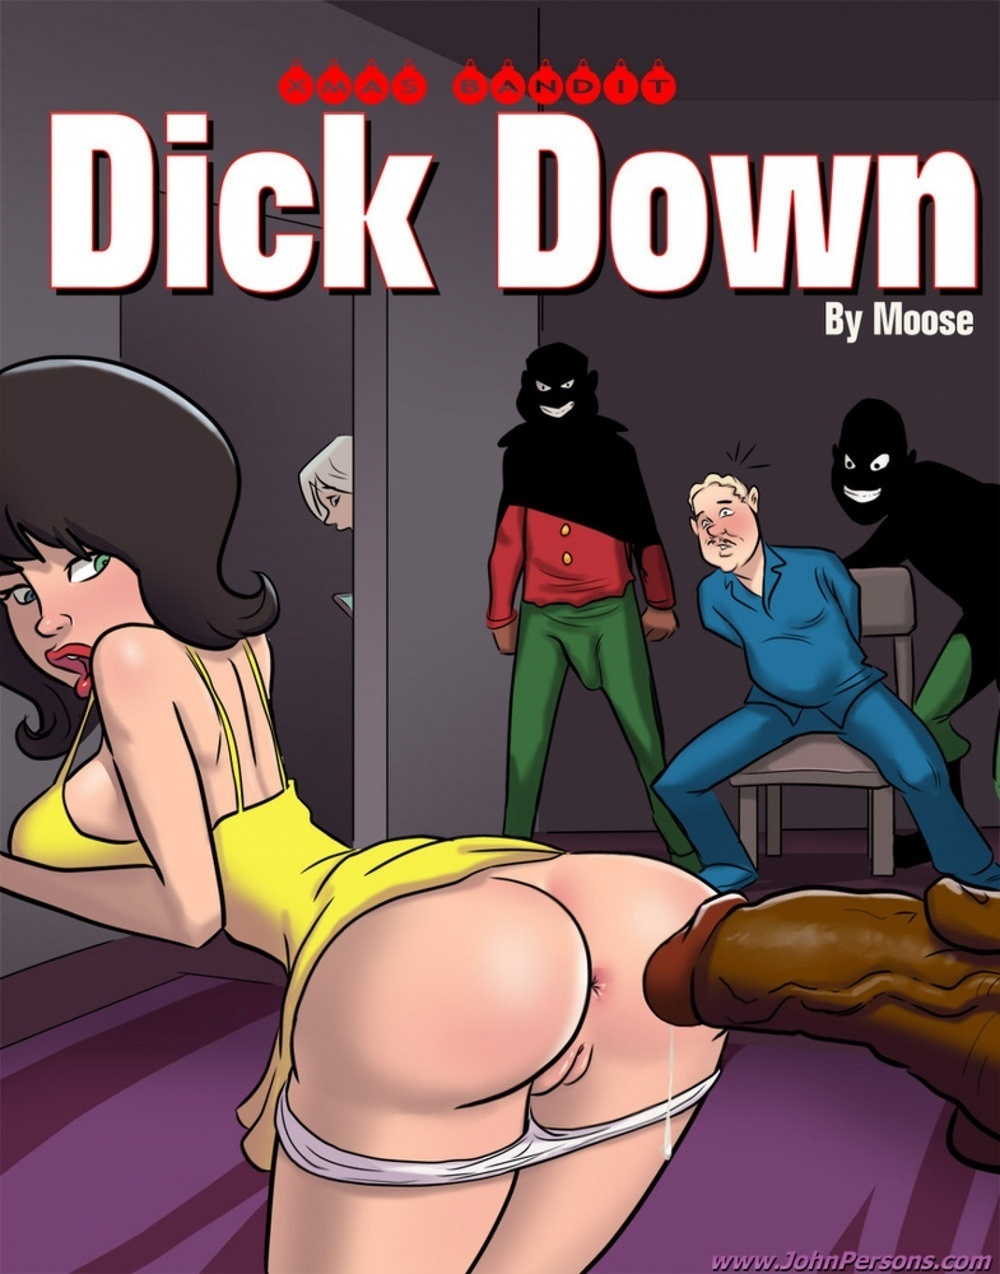 XMAS BANDIT – DICKDOWN FROM MOOSE AND JOHN PERSONS